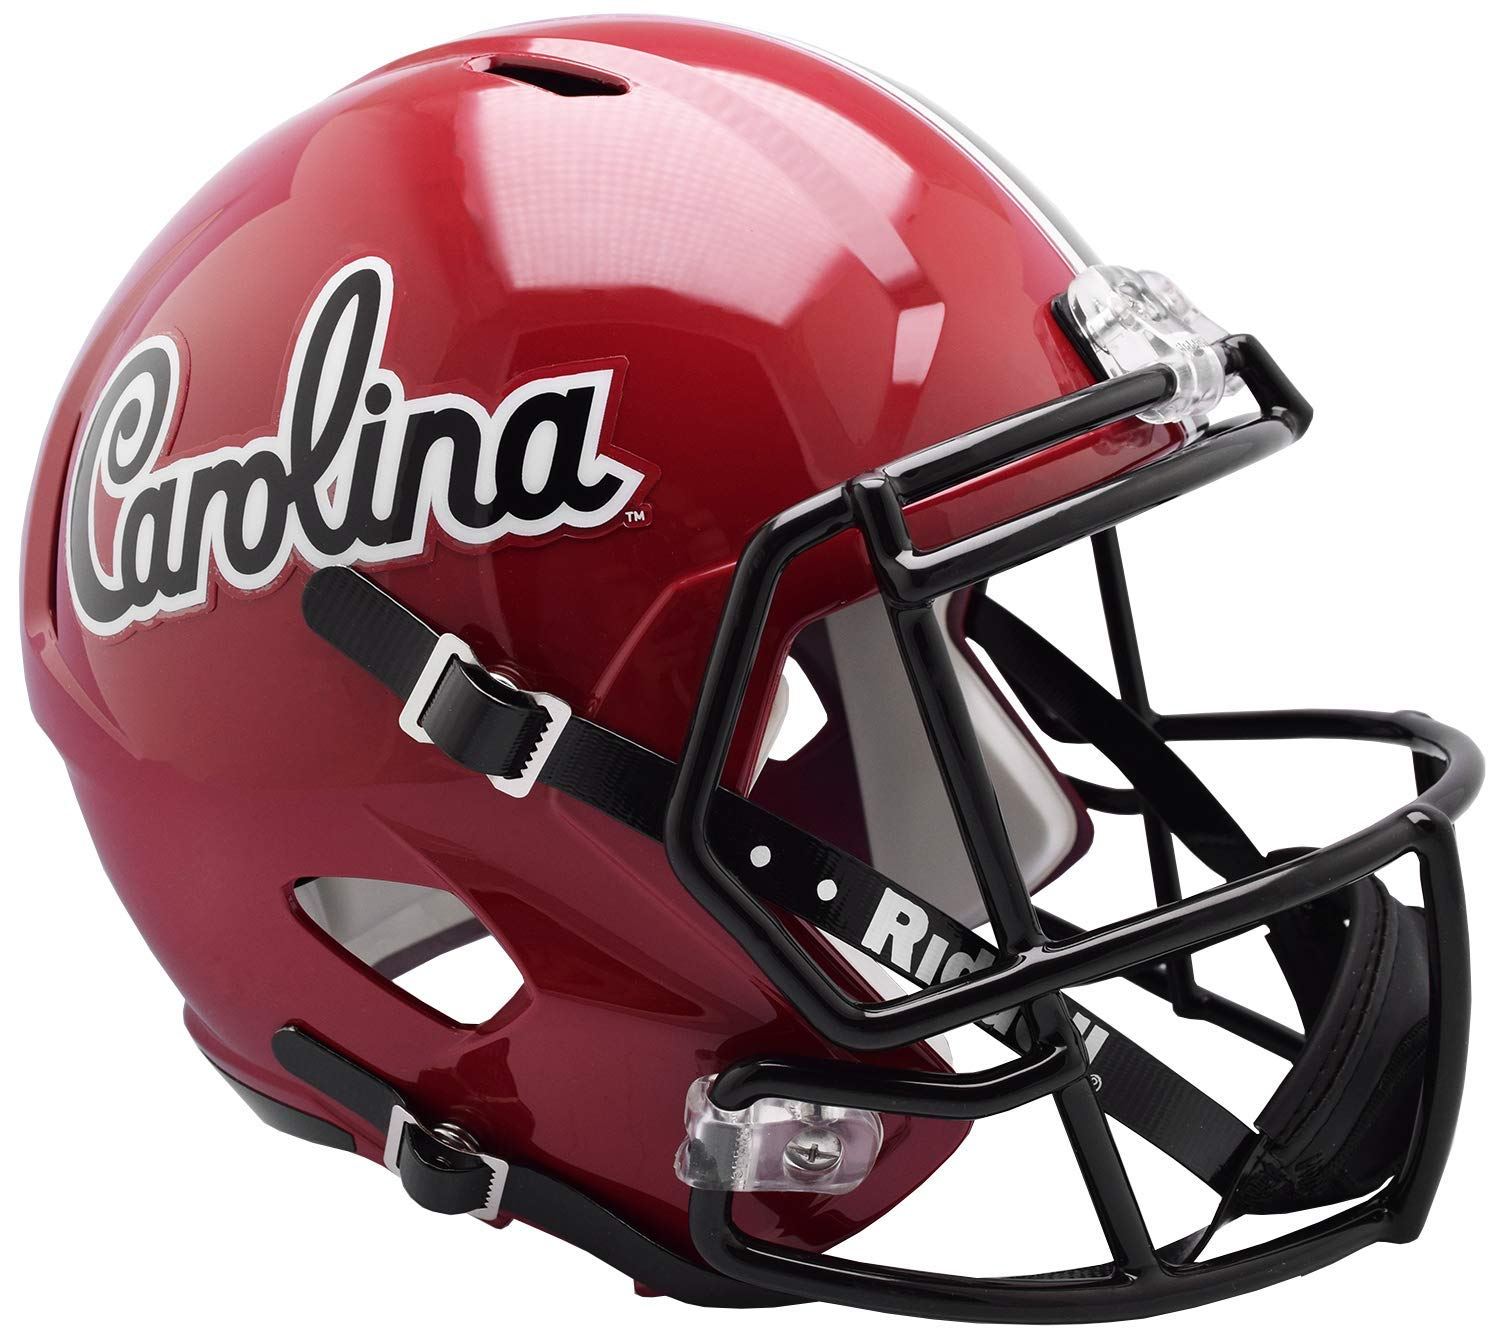 Riddell NCAA South Carolina Fighting Gamecocks Helmet Full Size Replica One Size Team Color